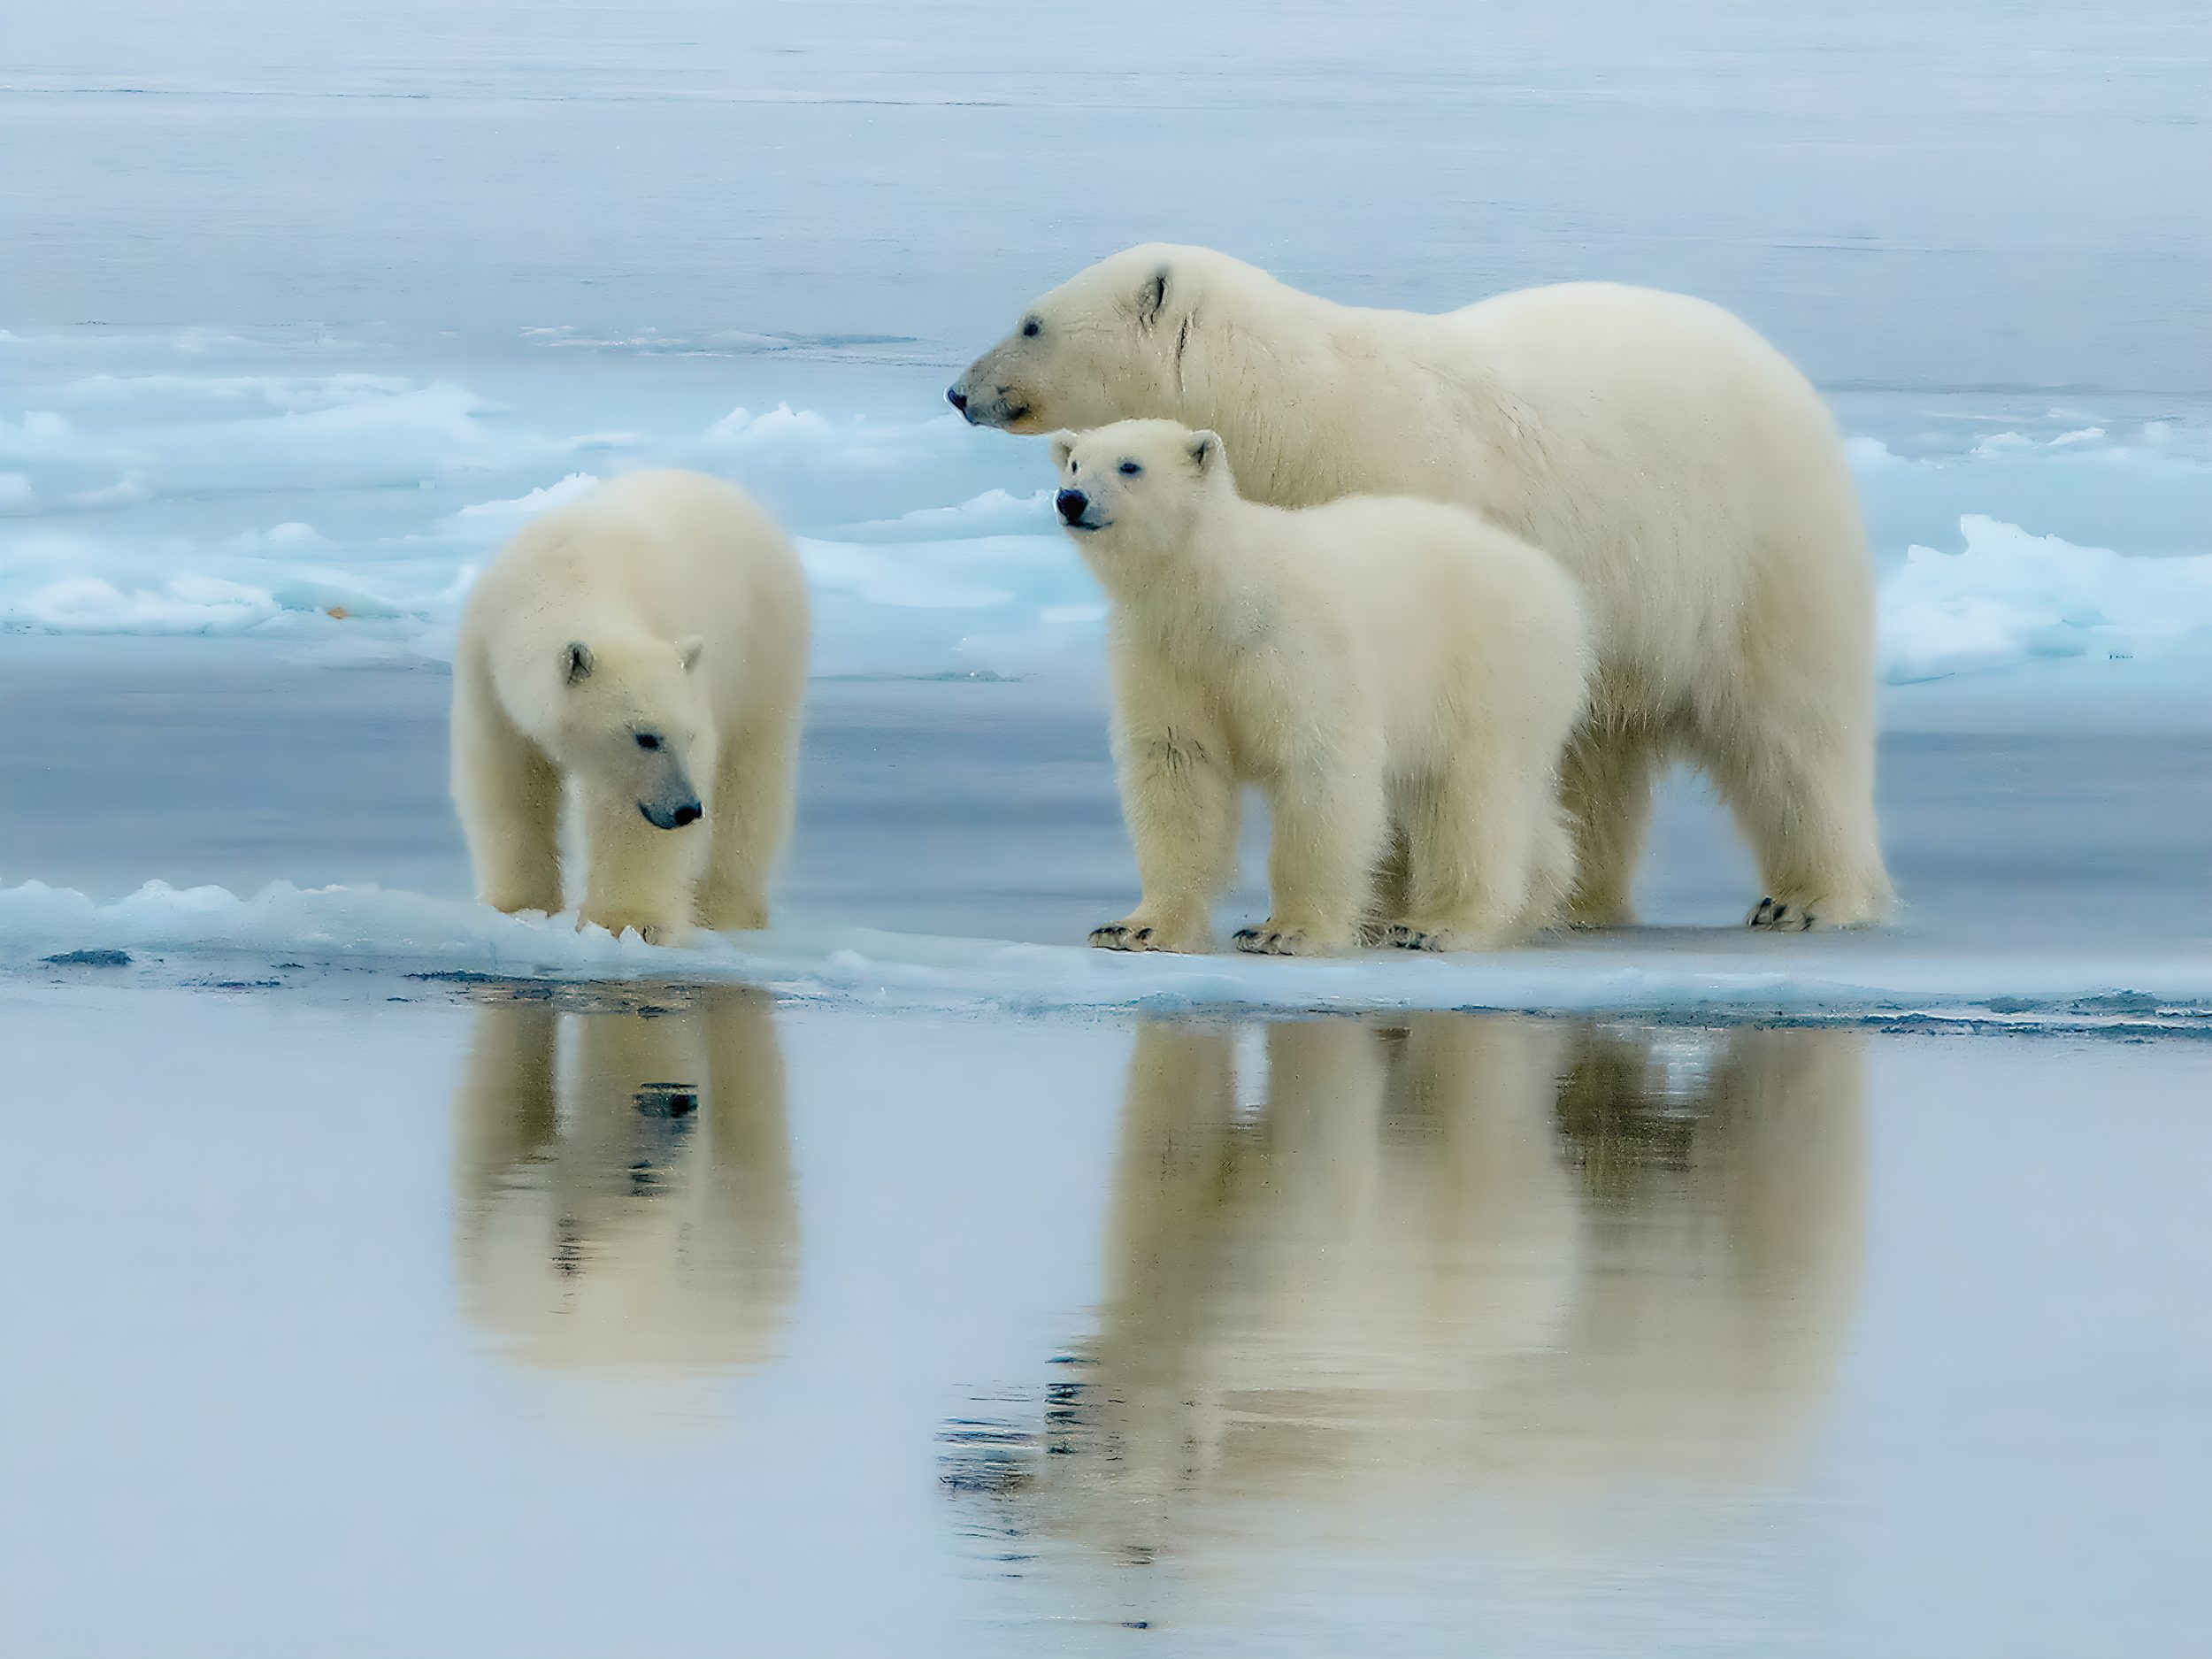 A polar bear and her two cubs walking along a partially frozen fjord in Scoresby Sund, East Greenland.